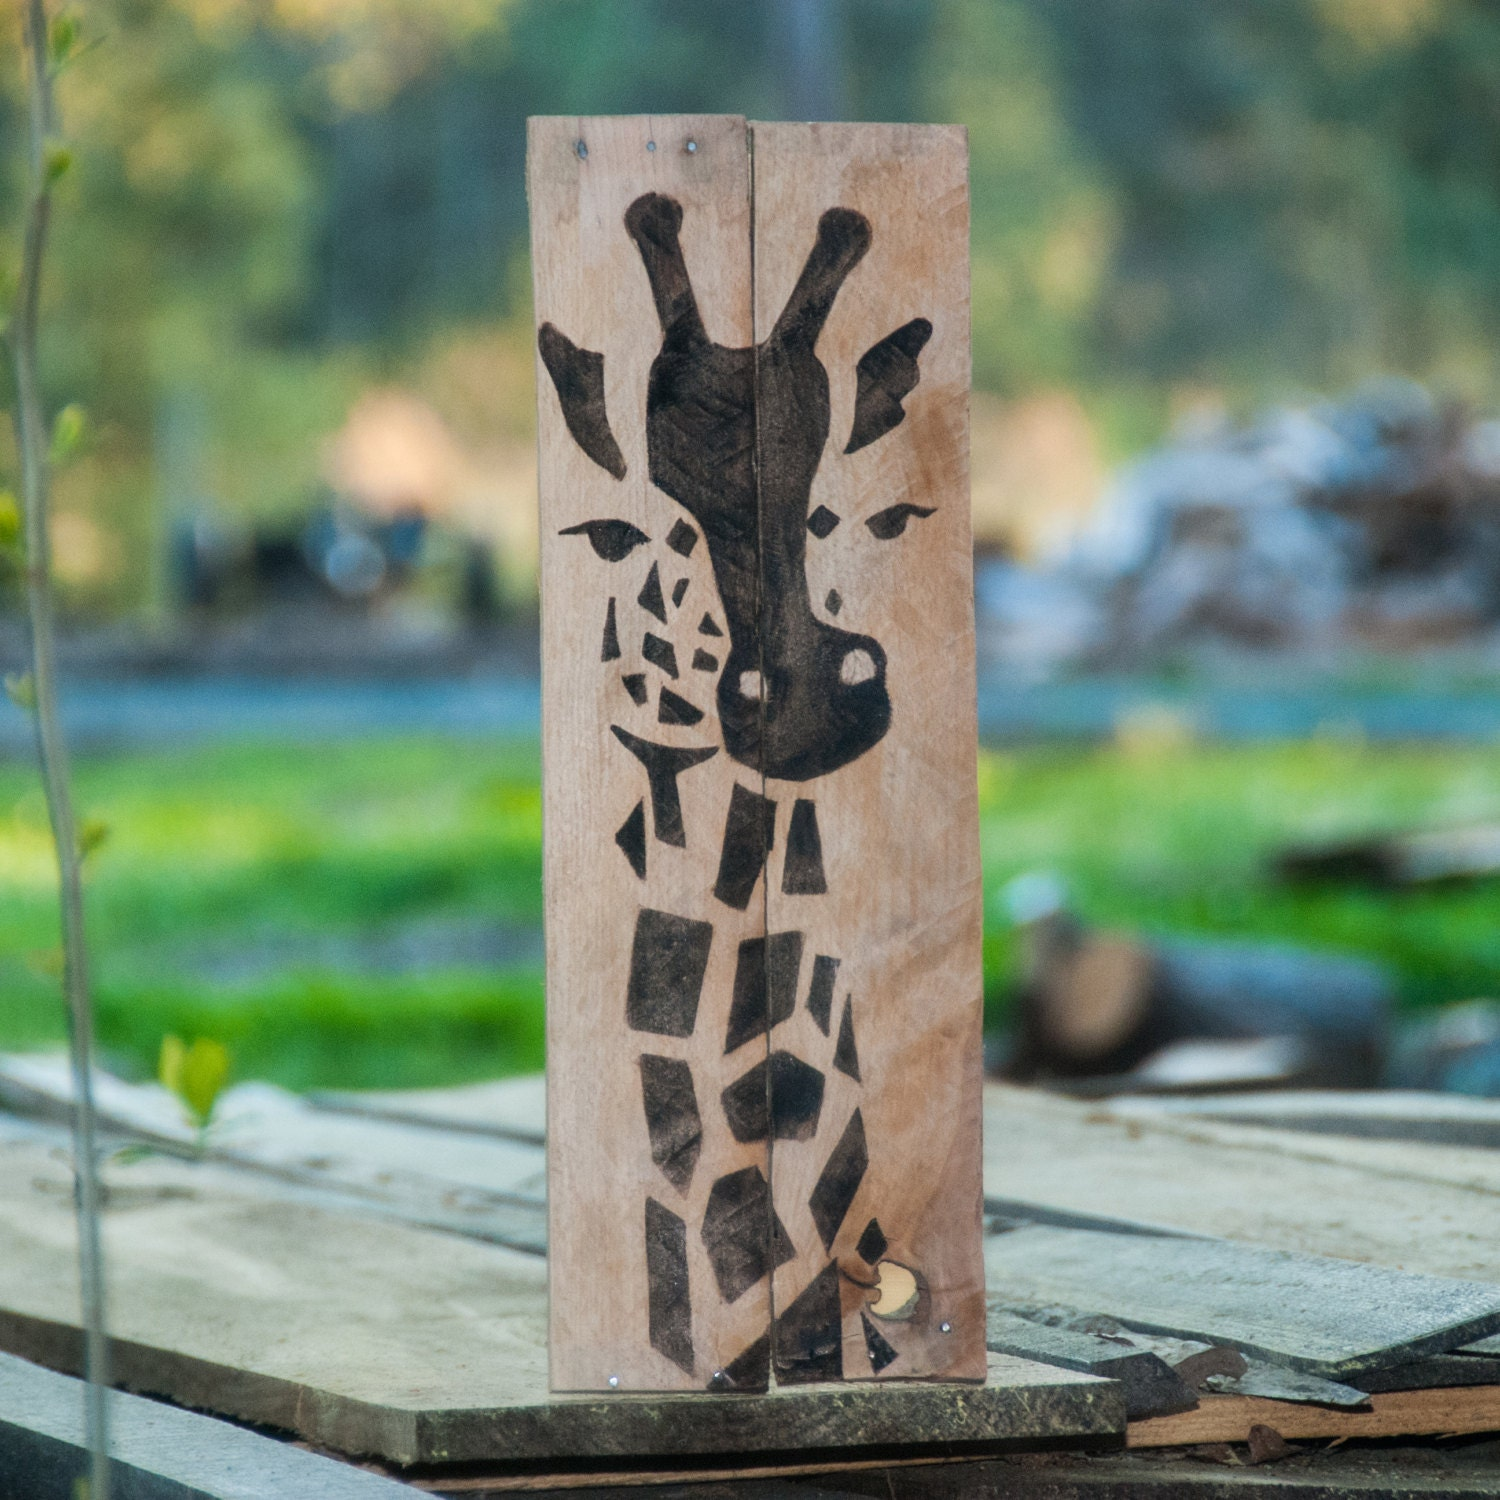 giraffe print giraffe home decor safari decor giraffe art